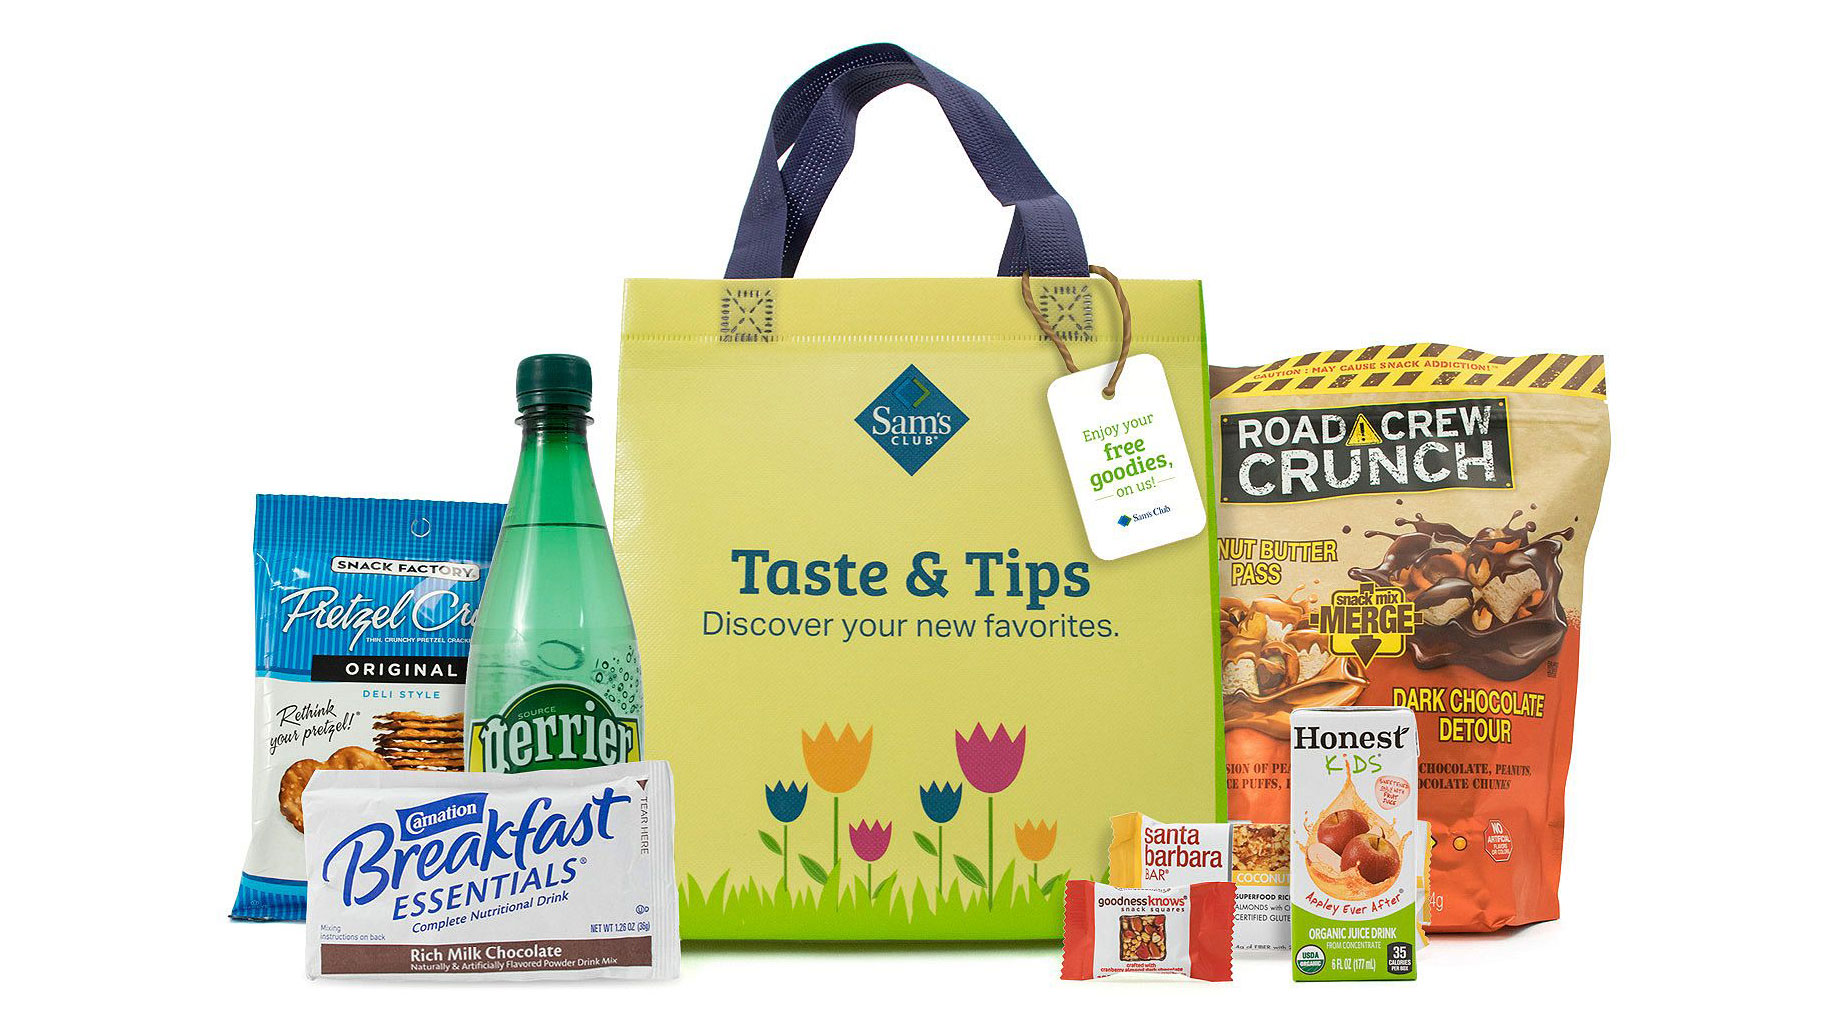 Sam's Club Sampler Bag